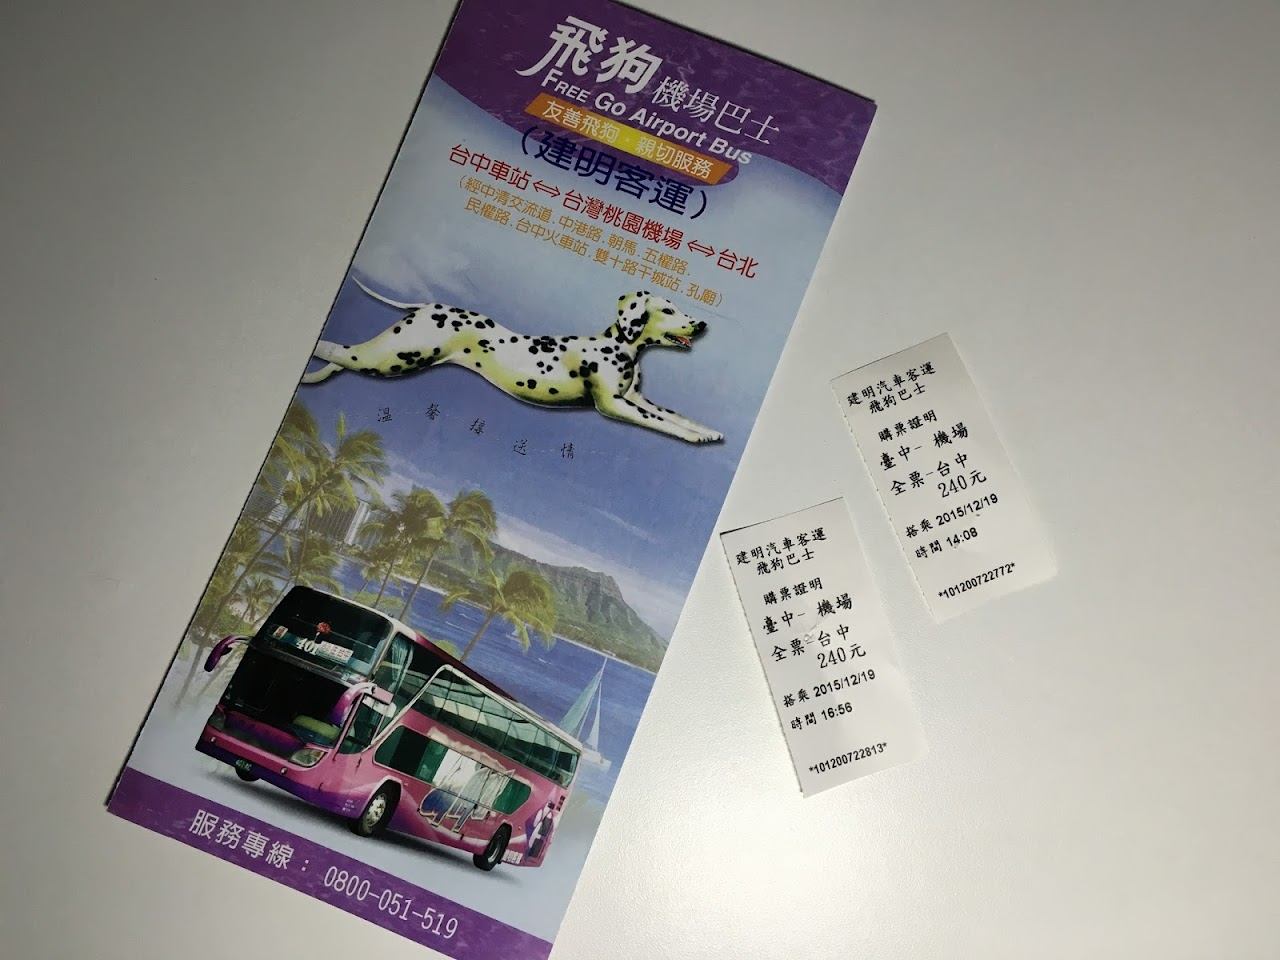 飛狗機場巴士(Free Go Airport Bus)